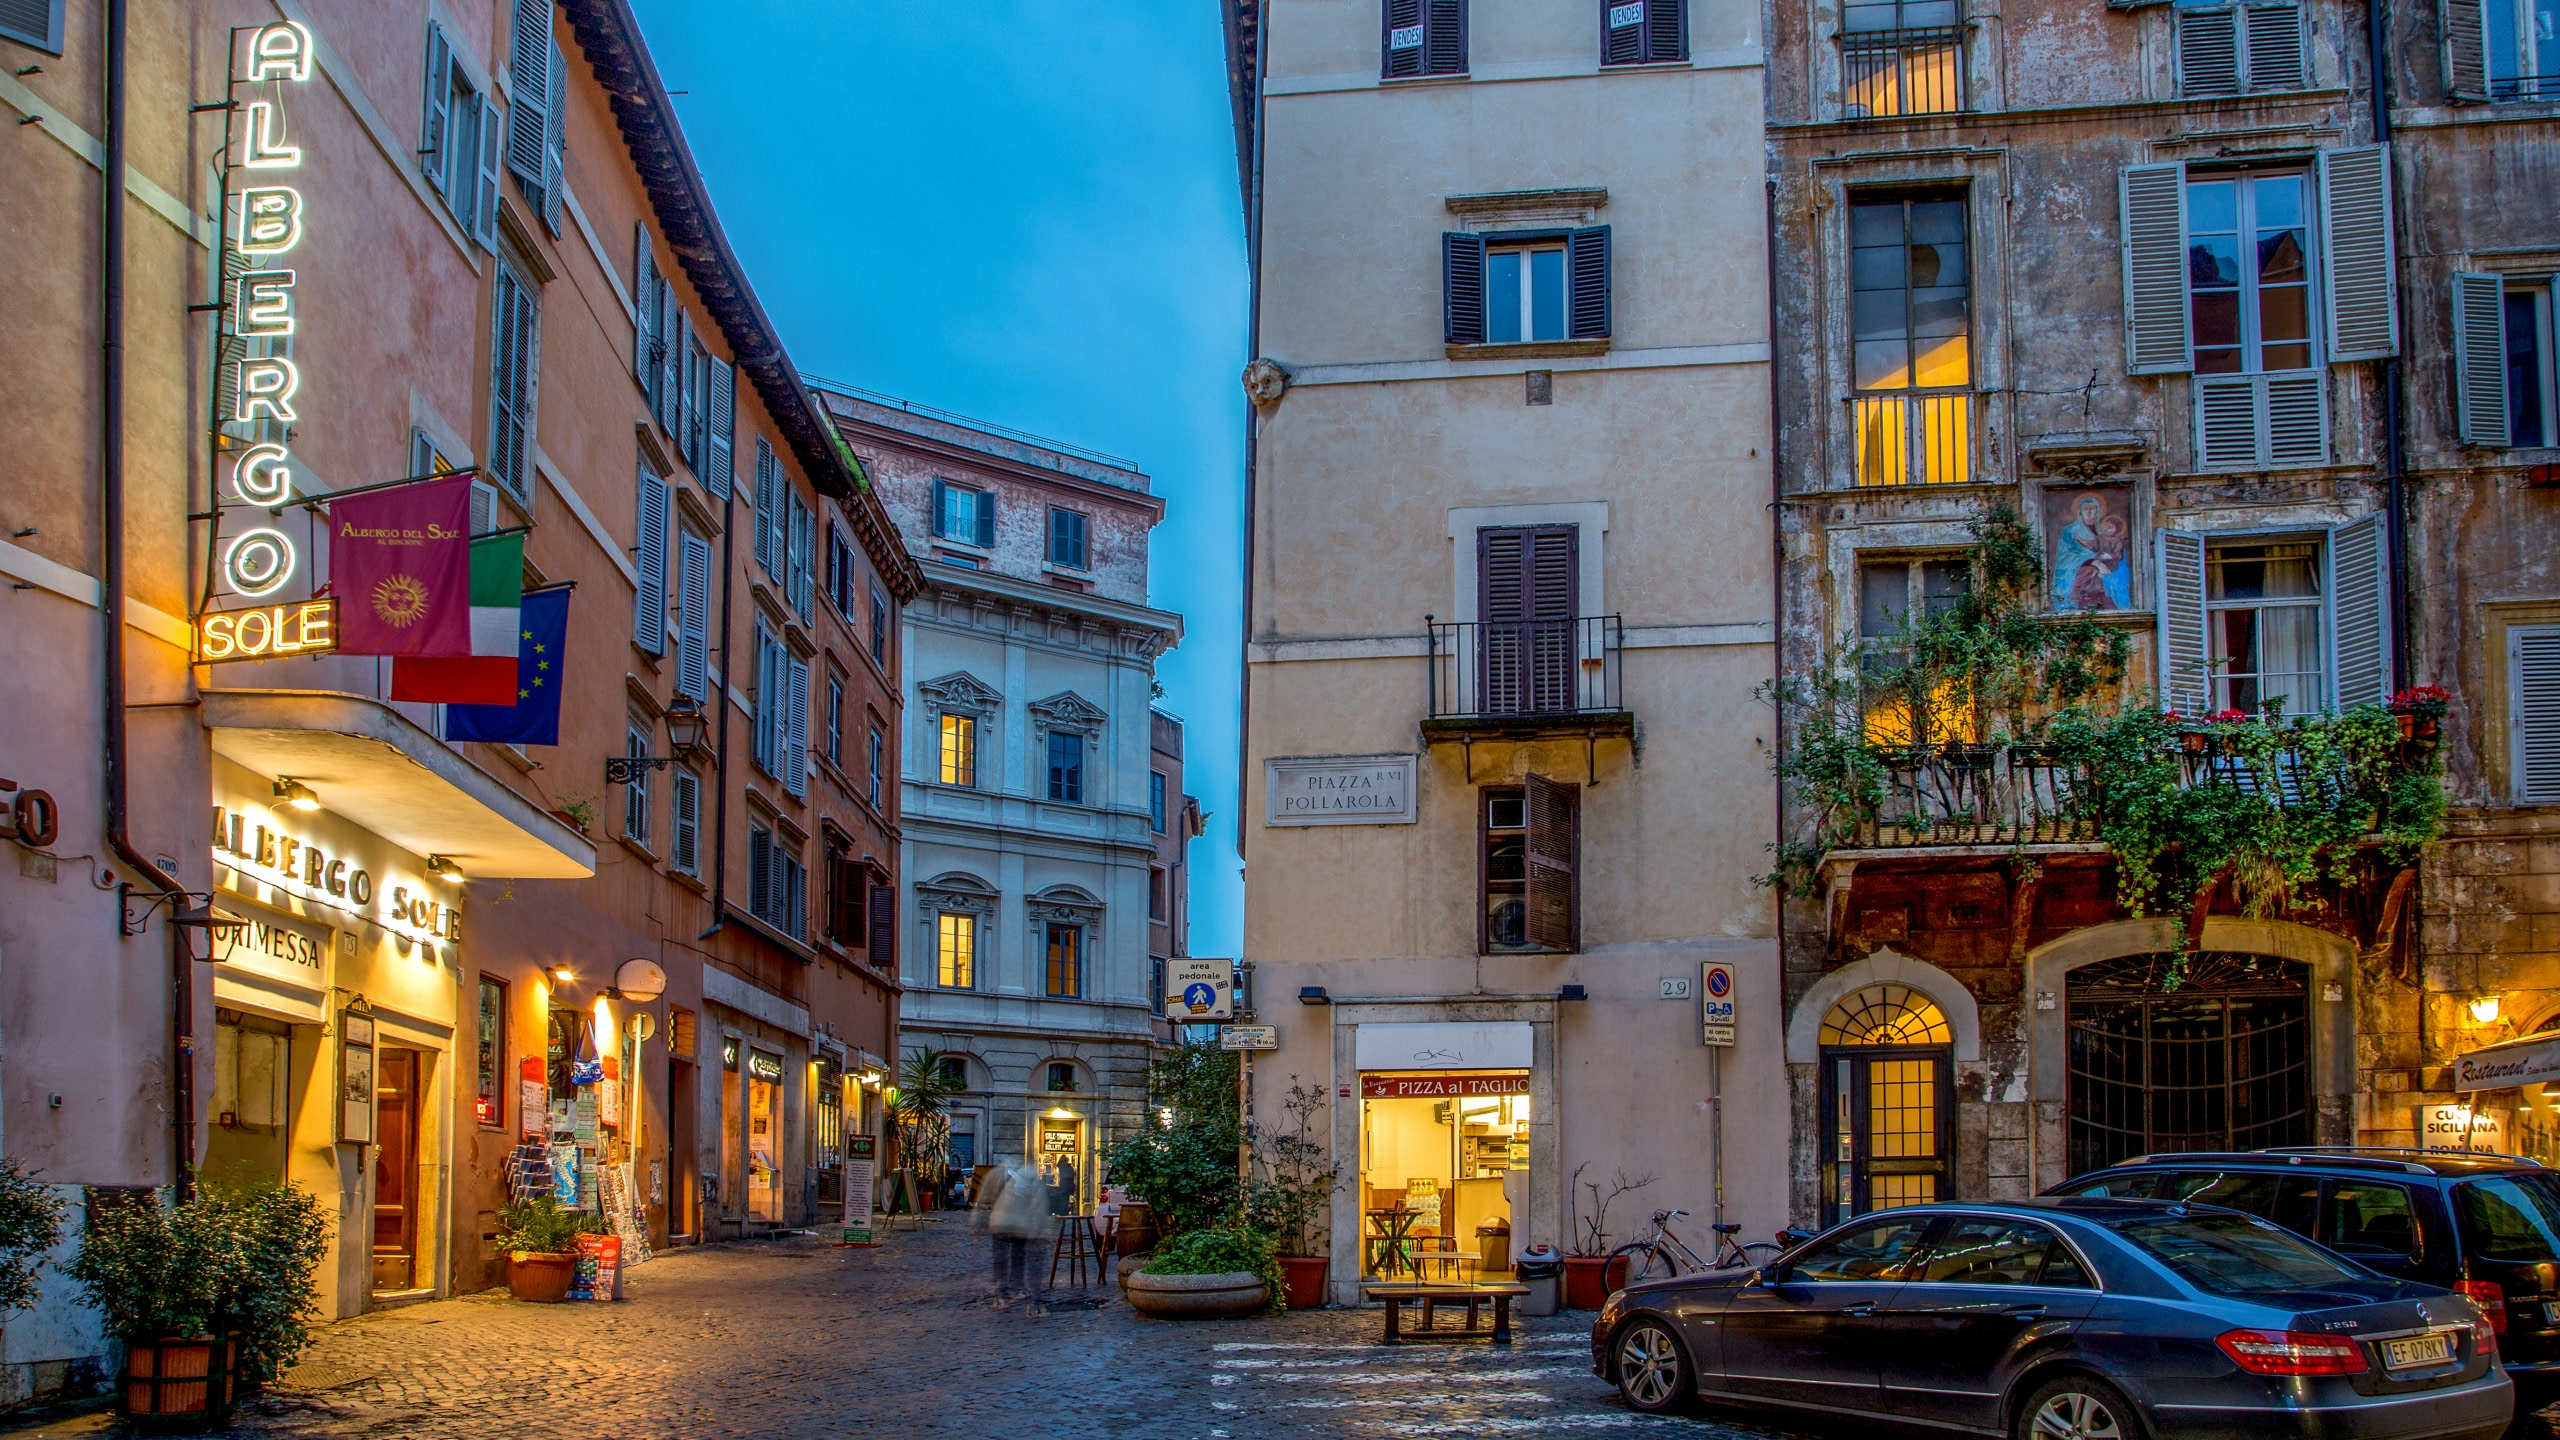 hotel-sole-rome-externe01